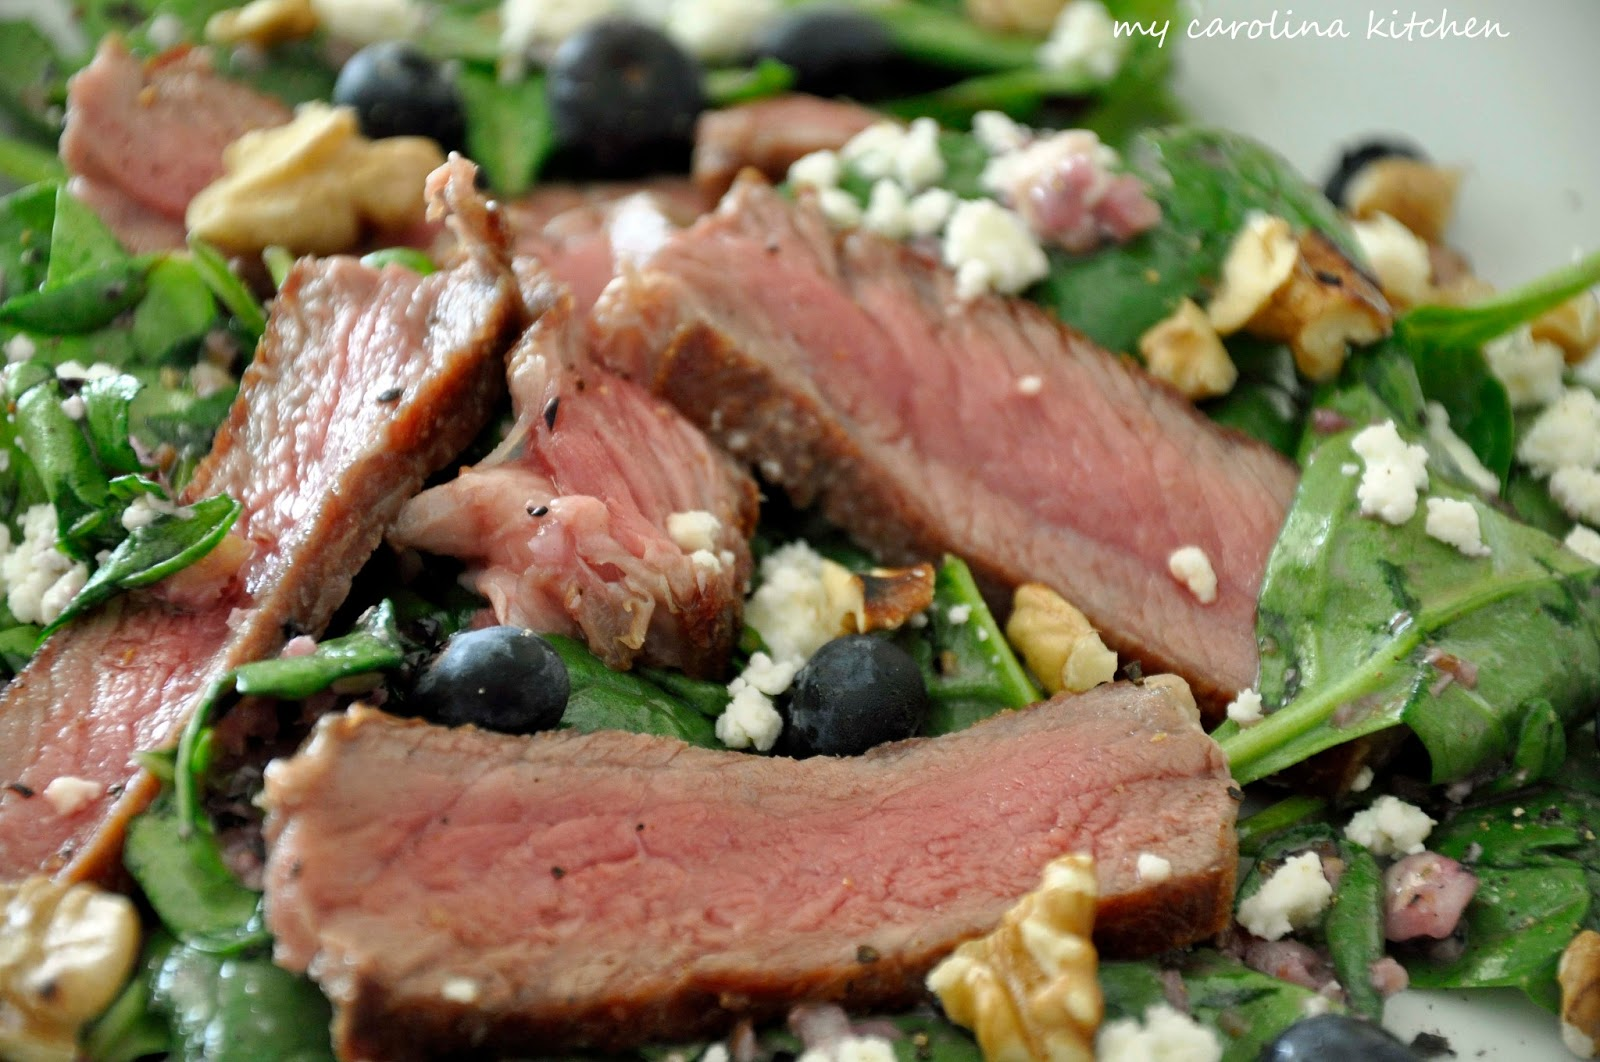 Steak Salad with Spinach, Blueberries & Toasted Pecans